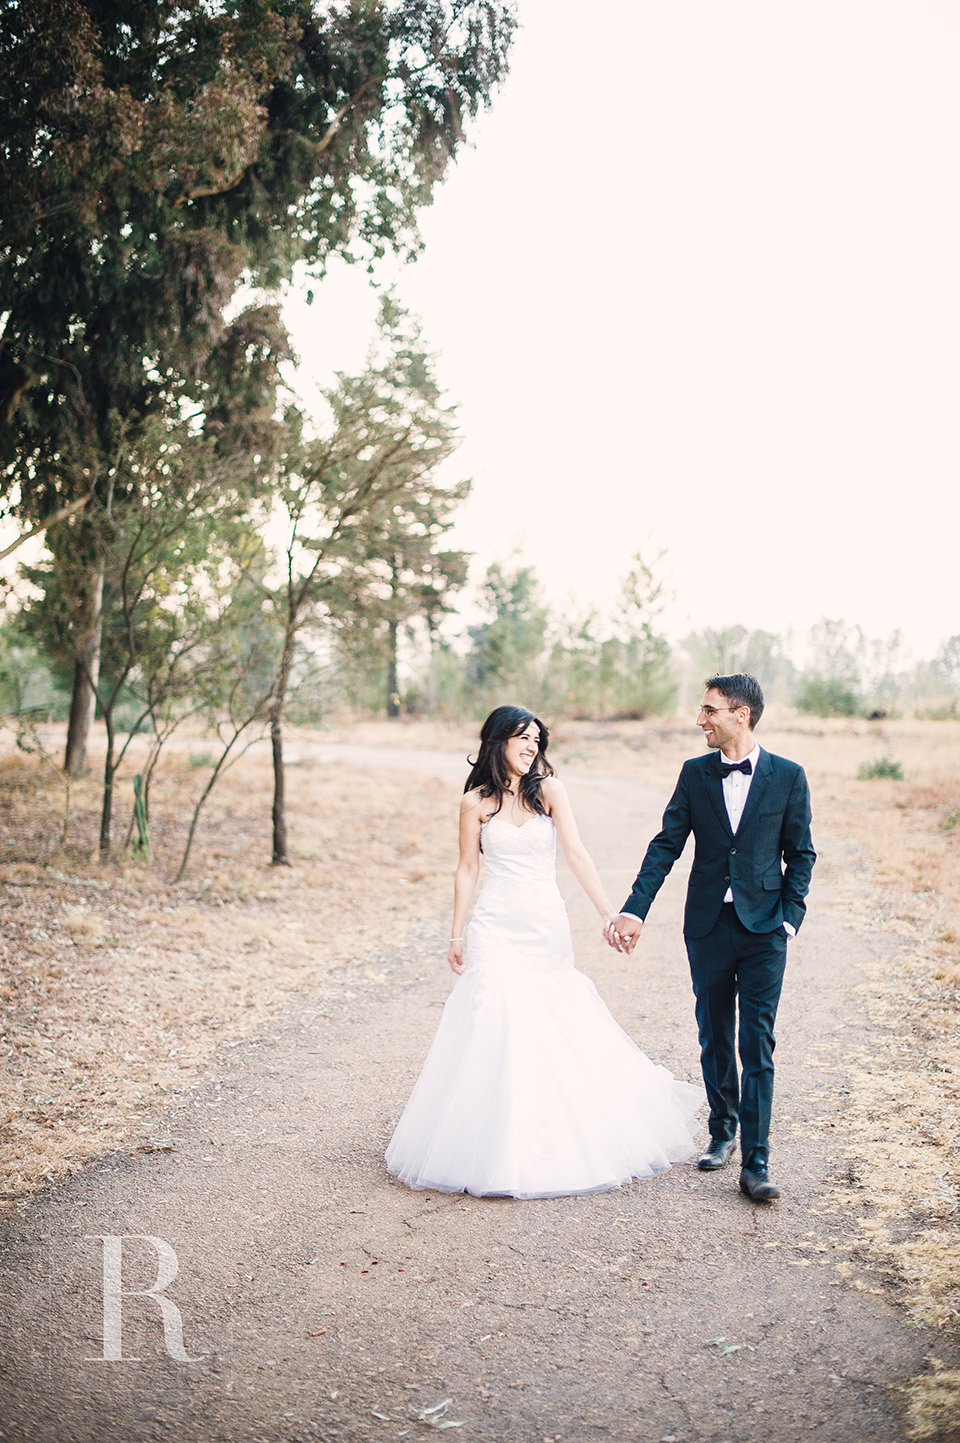 RYAN PARKER PHOTOGRAPHY_WEDDINGS_PRETORIA_ROSEMARY HILL_M&N -0536.jpg